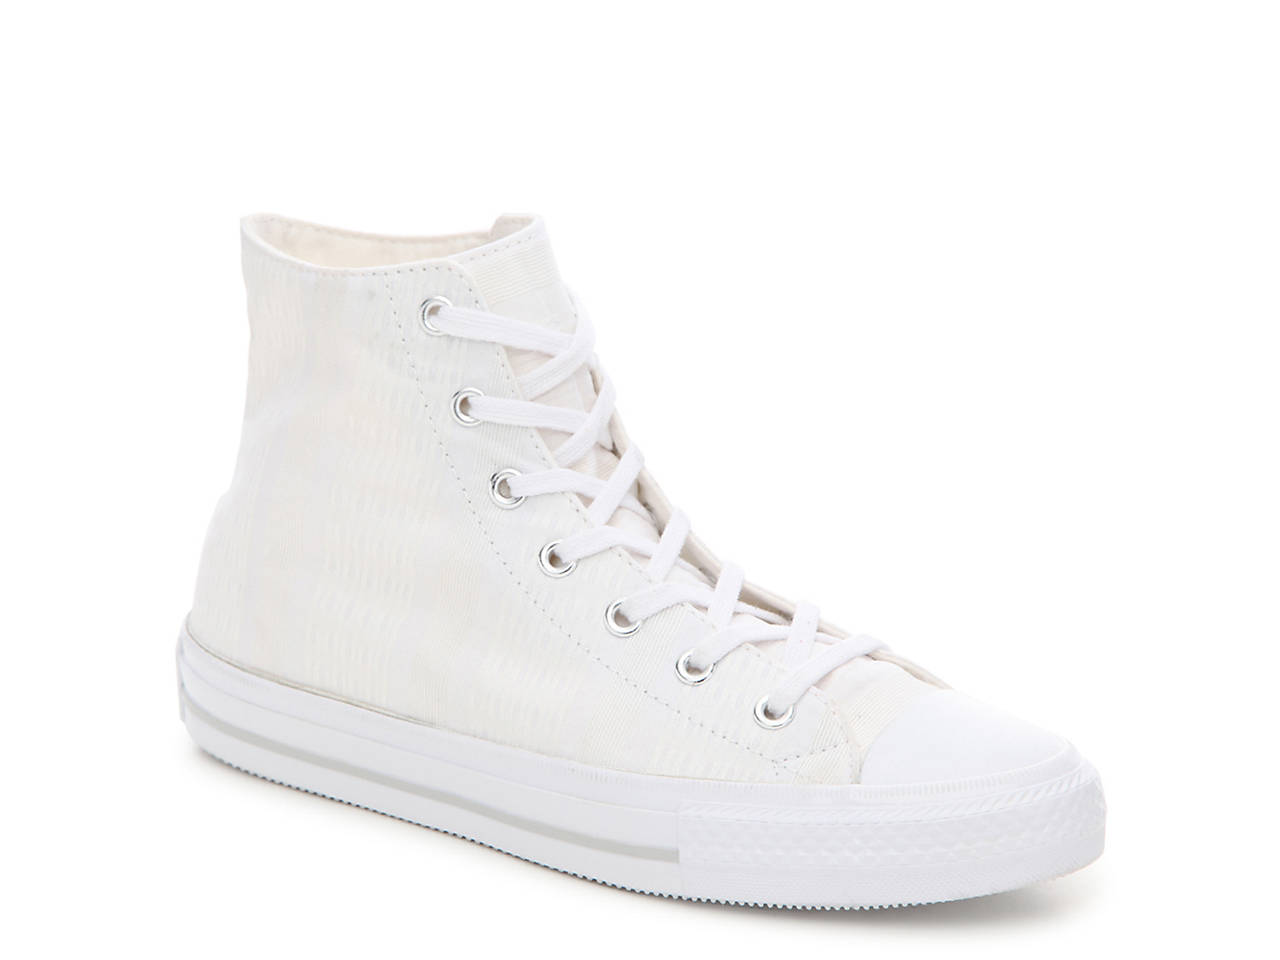 15d7b8d44d86 Converse Chuck Taylor All Star Gemma High-Top Sneaker - Women s ...